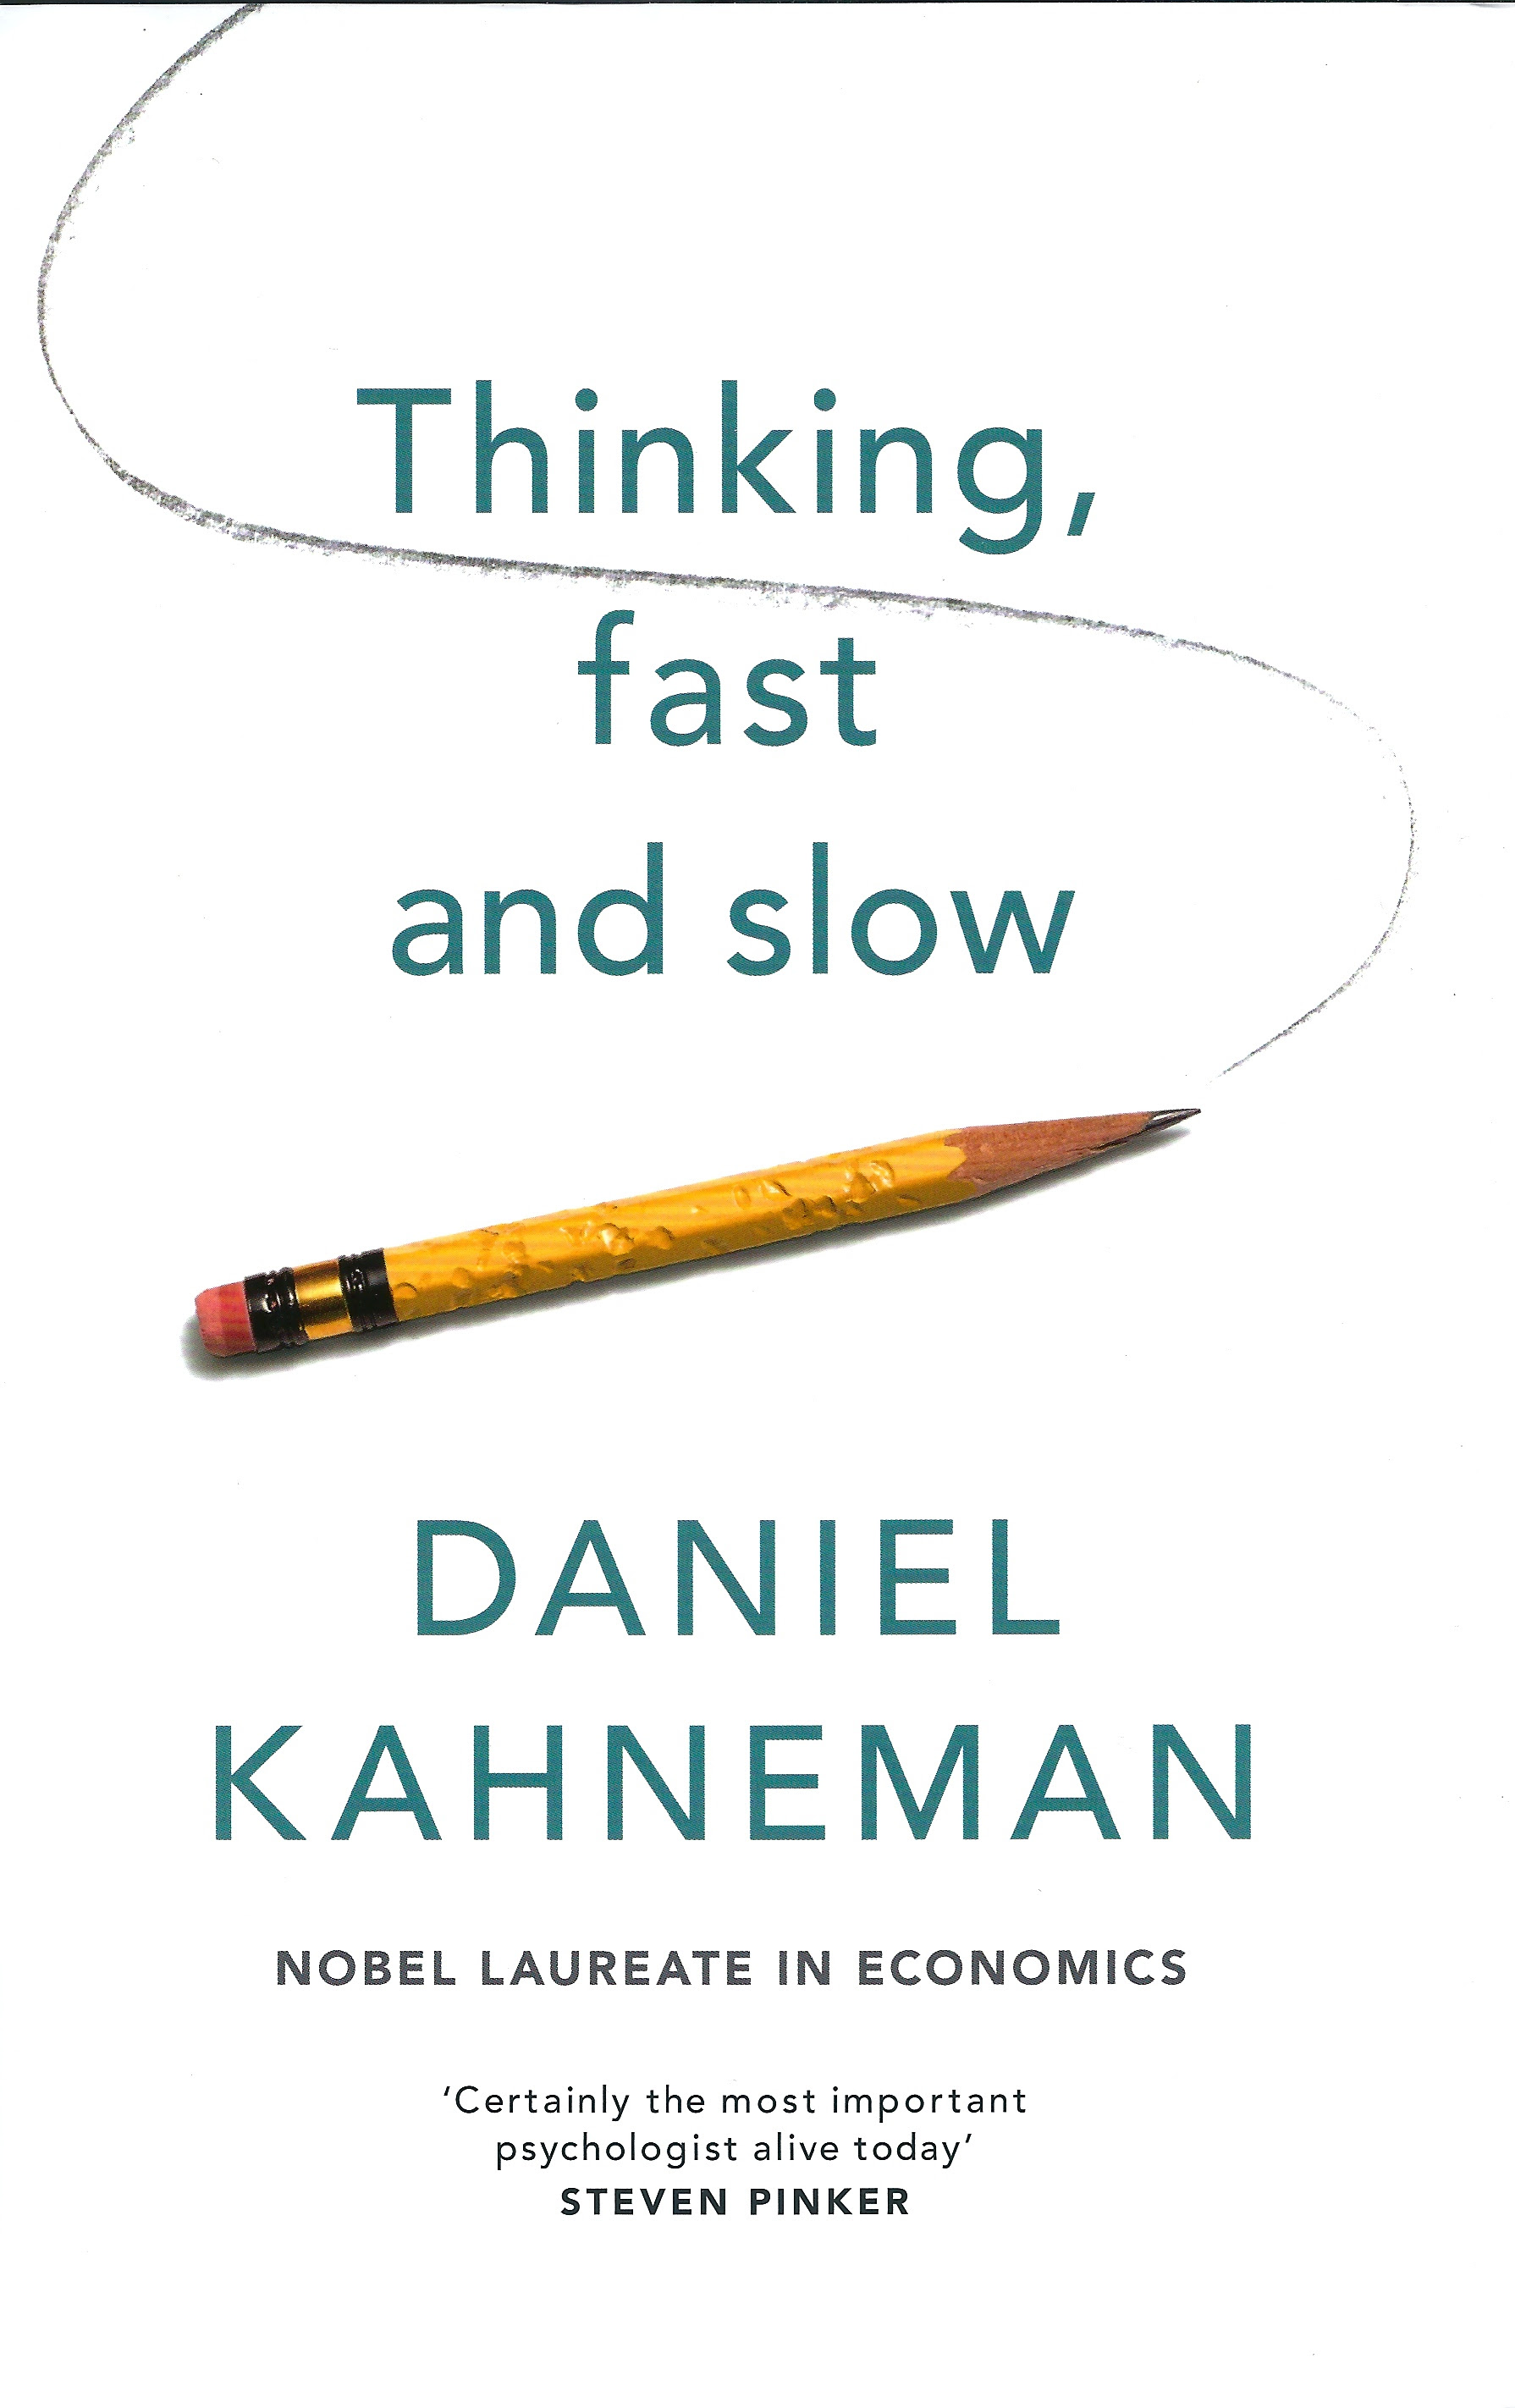 http://greatesthitsblog.com/wp-content/uploads/2011/12/THINKING-FAST-AND-SLOW.jpg